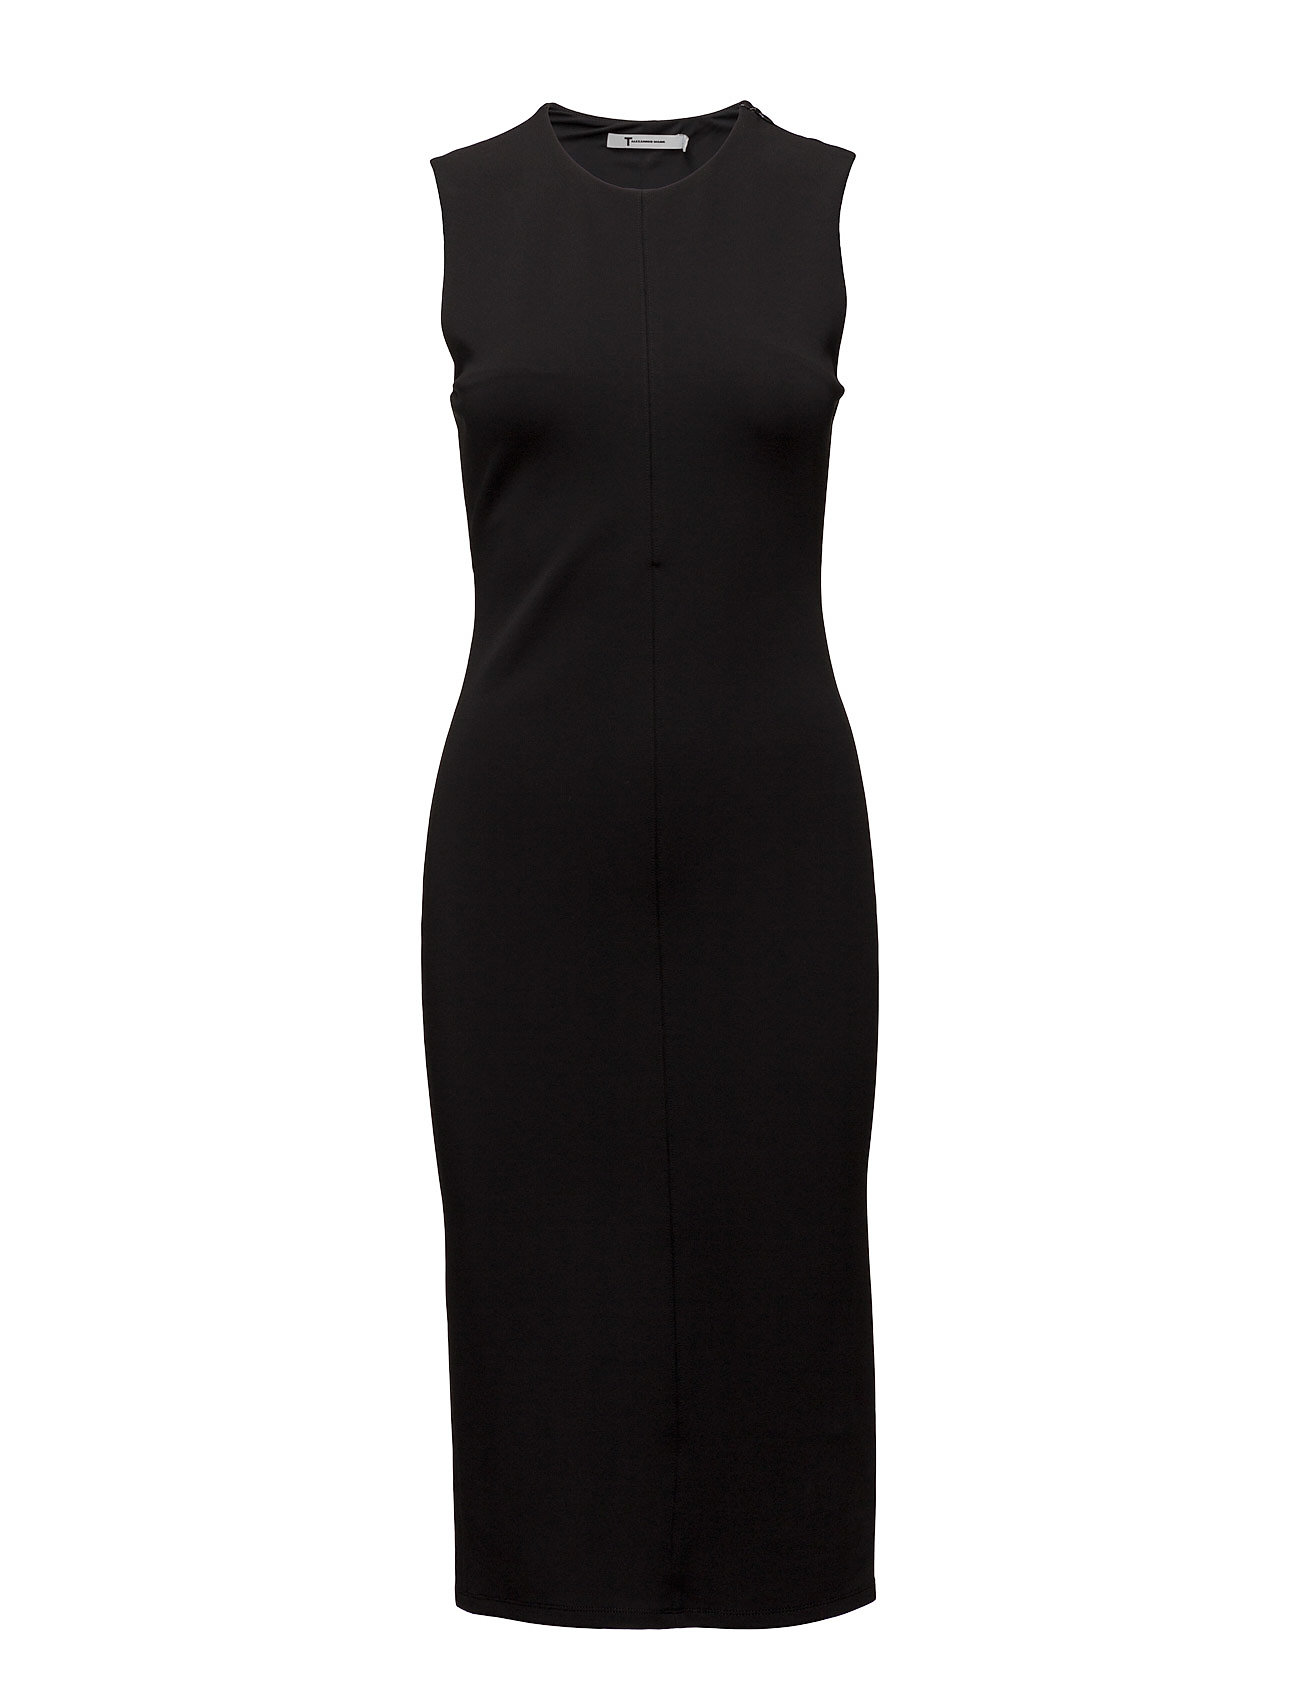 t by alexander wang Stretch faille ponte slvls dress w/ zipper på boozt.com dk